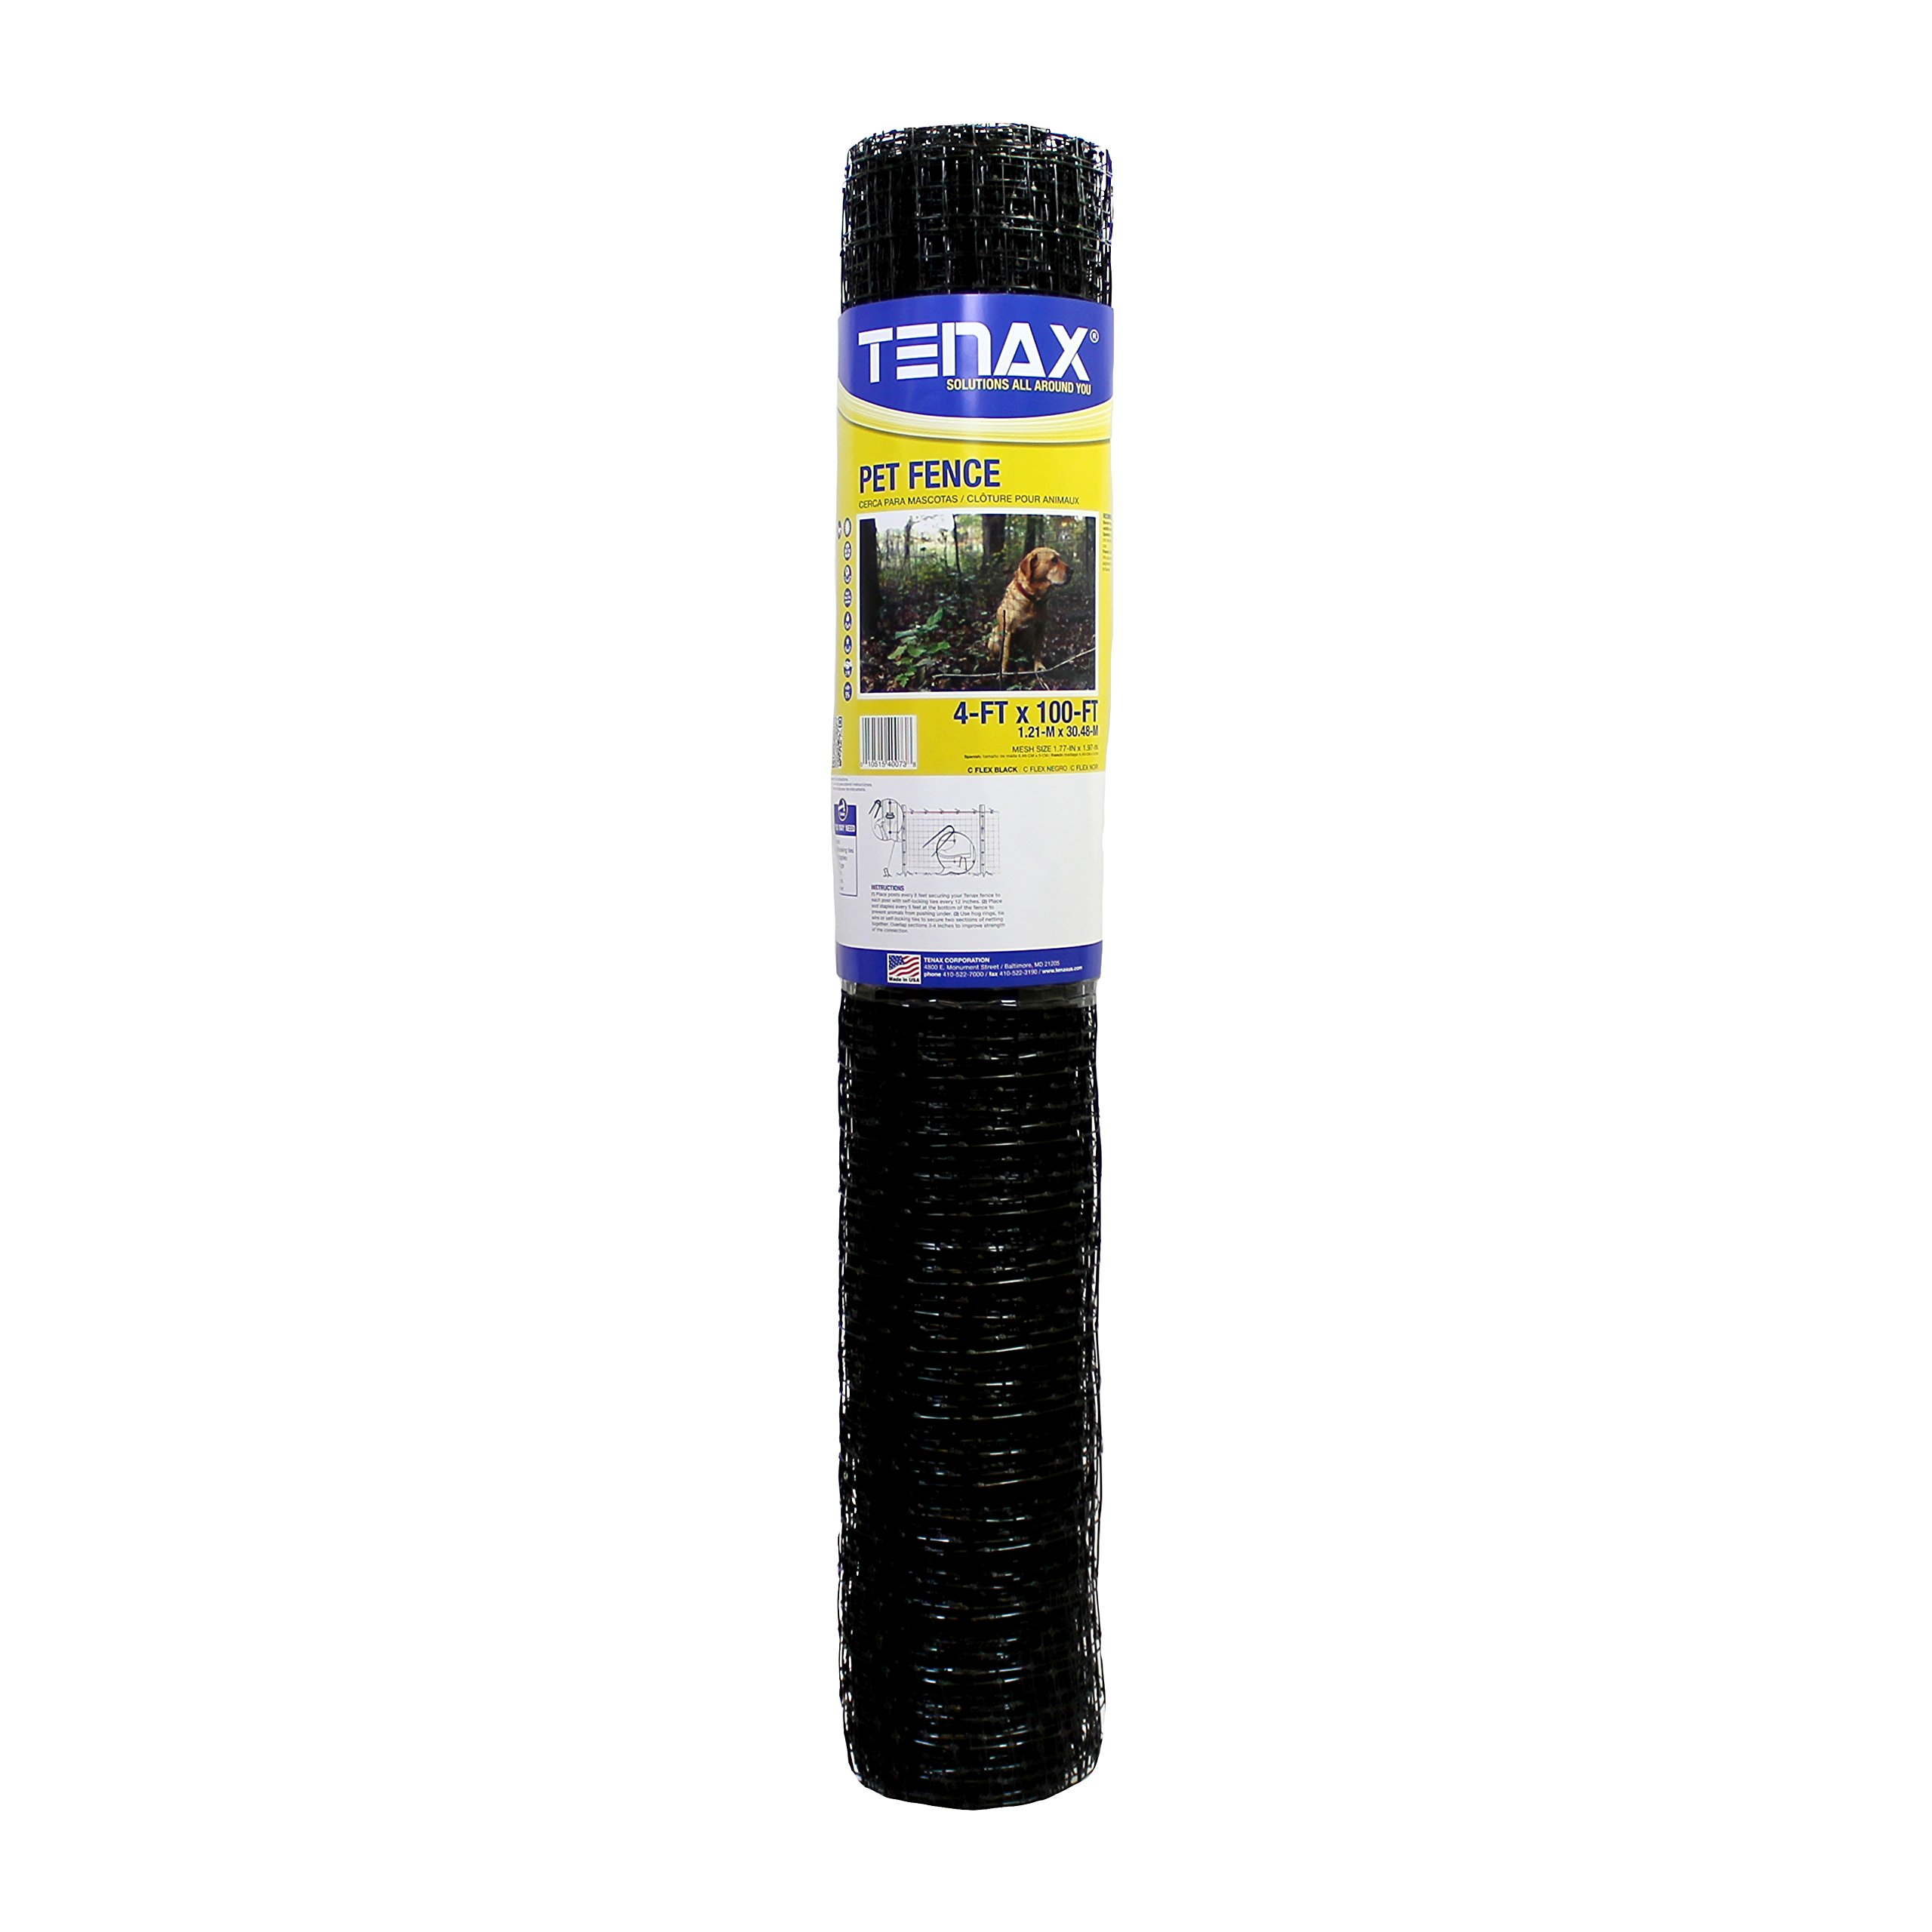 Tenax 2A140073 Pet Fence Select Pet Fence, Black, 4' x 100' by Tenax